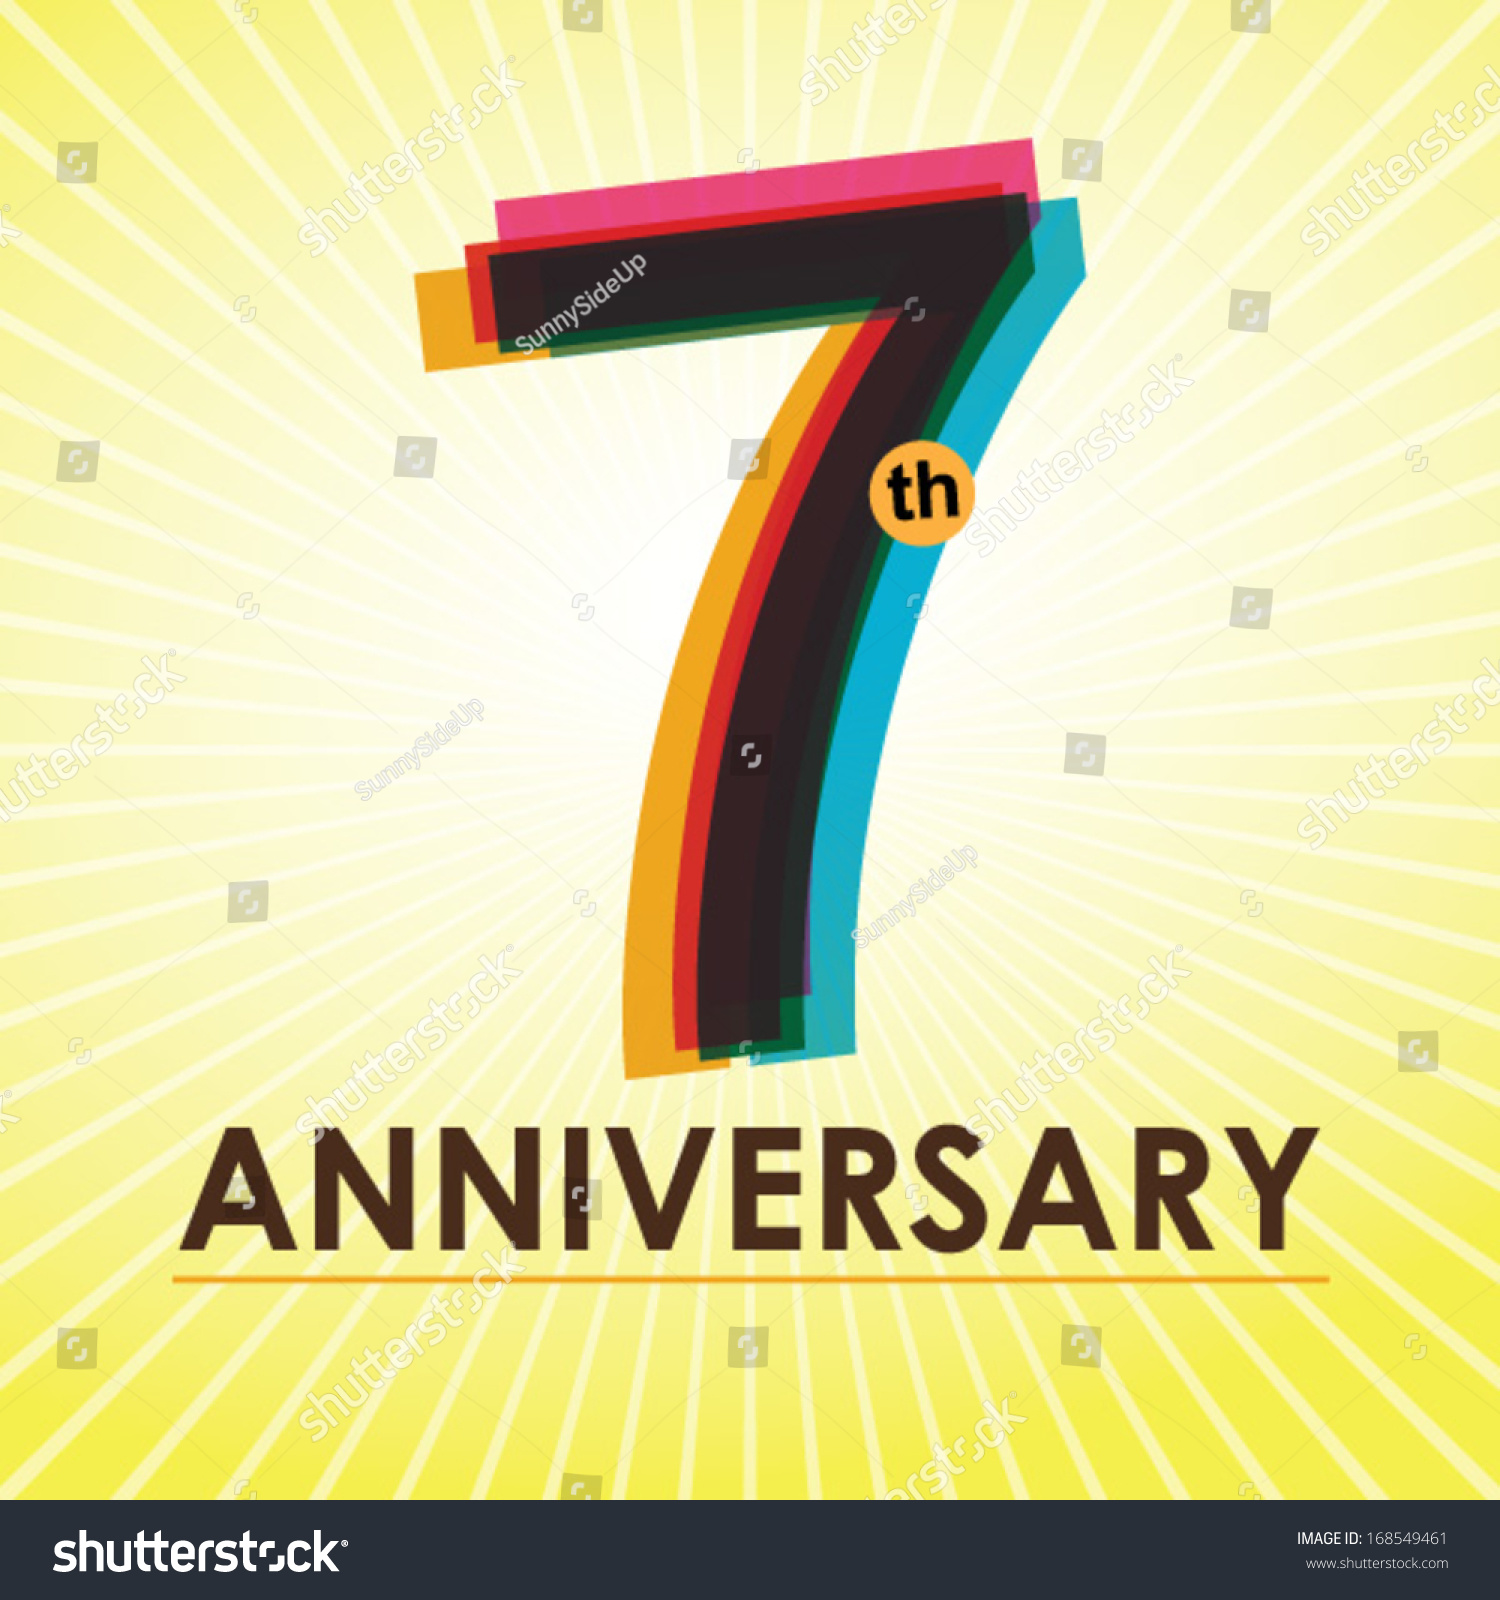 Poster backgrounds design - 7th Anniversary Poster Template Design In Retro Style Vector Background